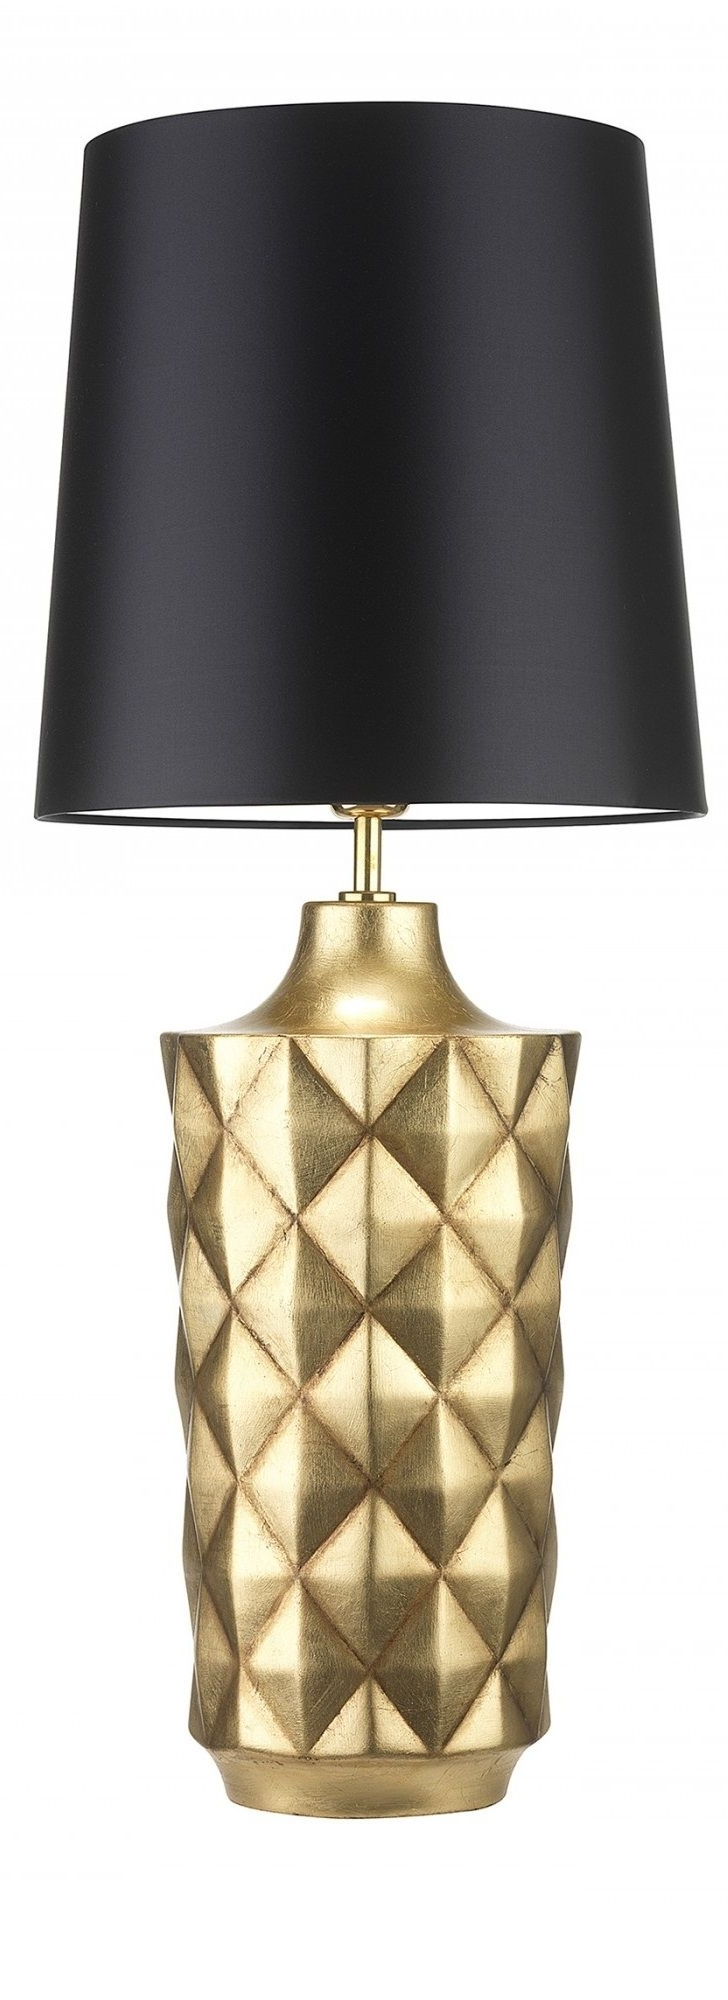 373 Best Lighting – Table Lamps Images On Pinterest (Gallery 13 of 20)